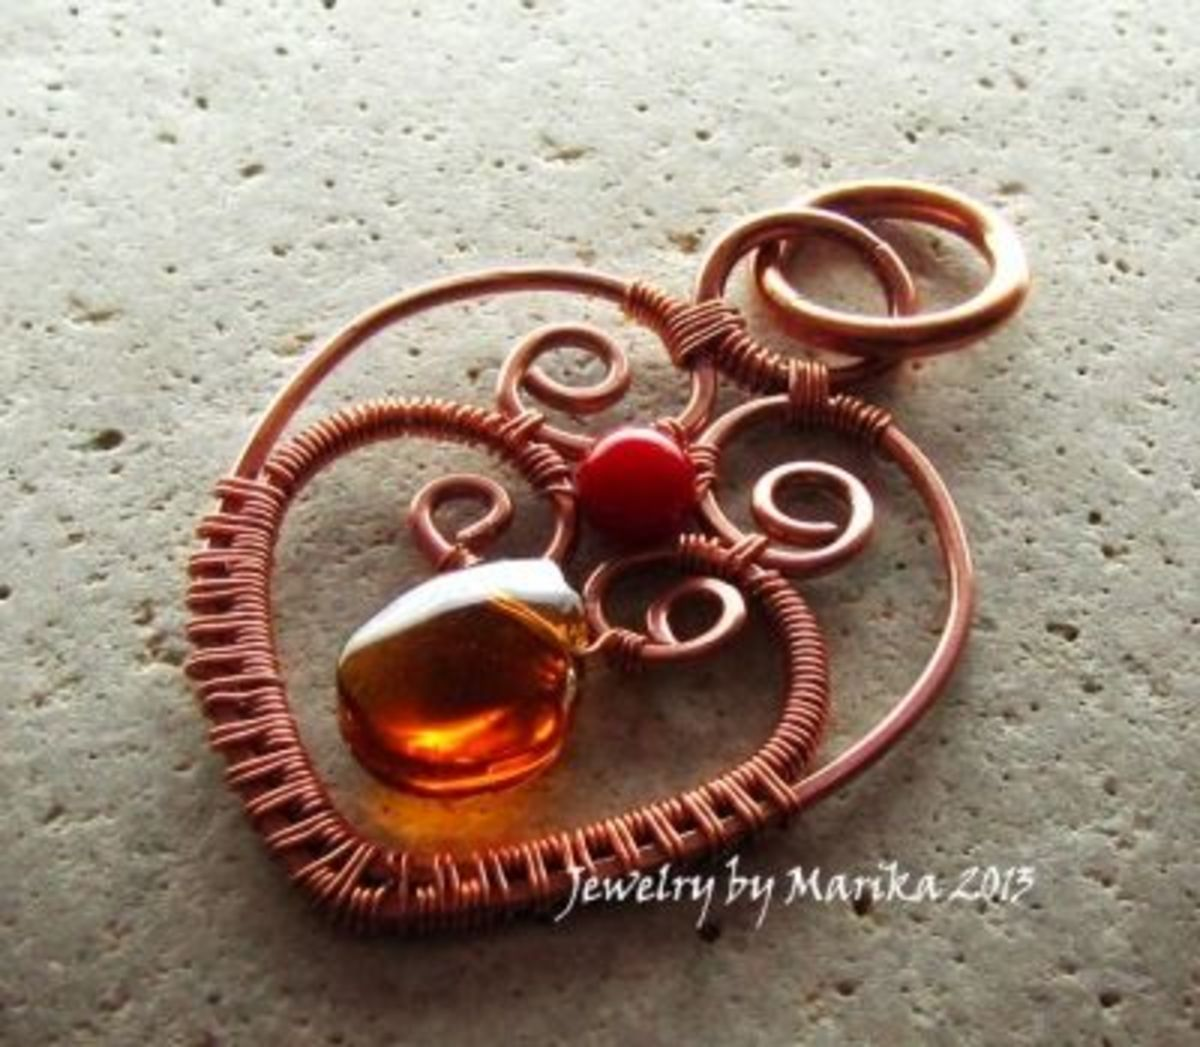 Here is a pendant I made from Jody's book - see the heart scroll shapes?